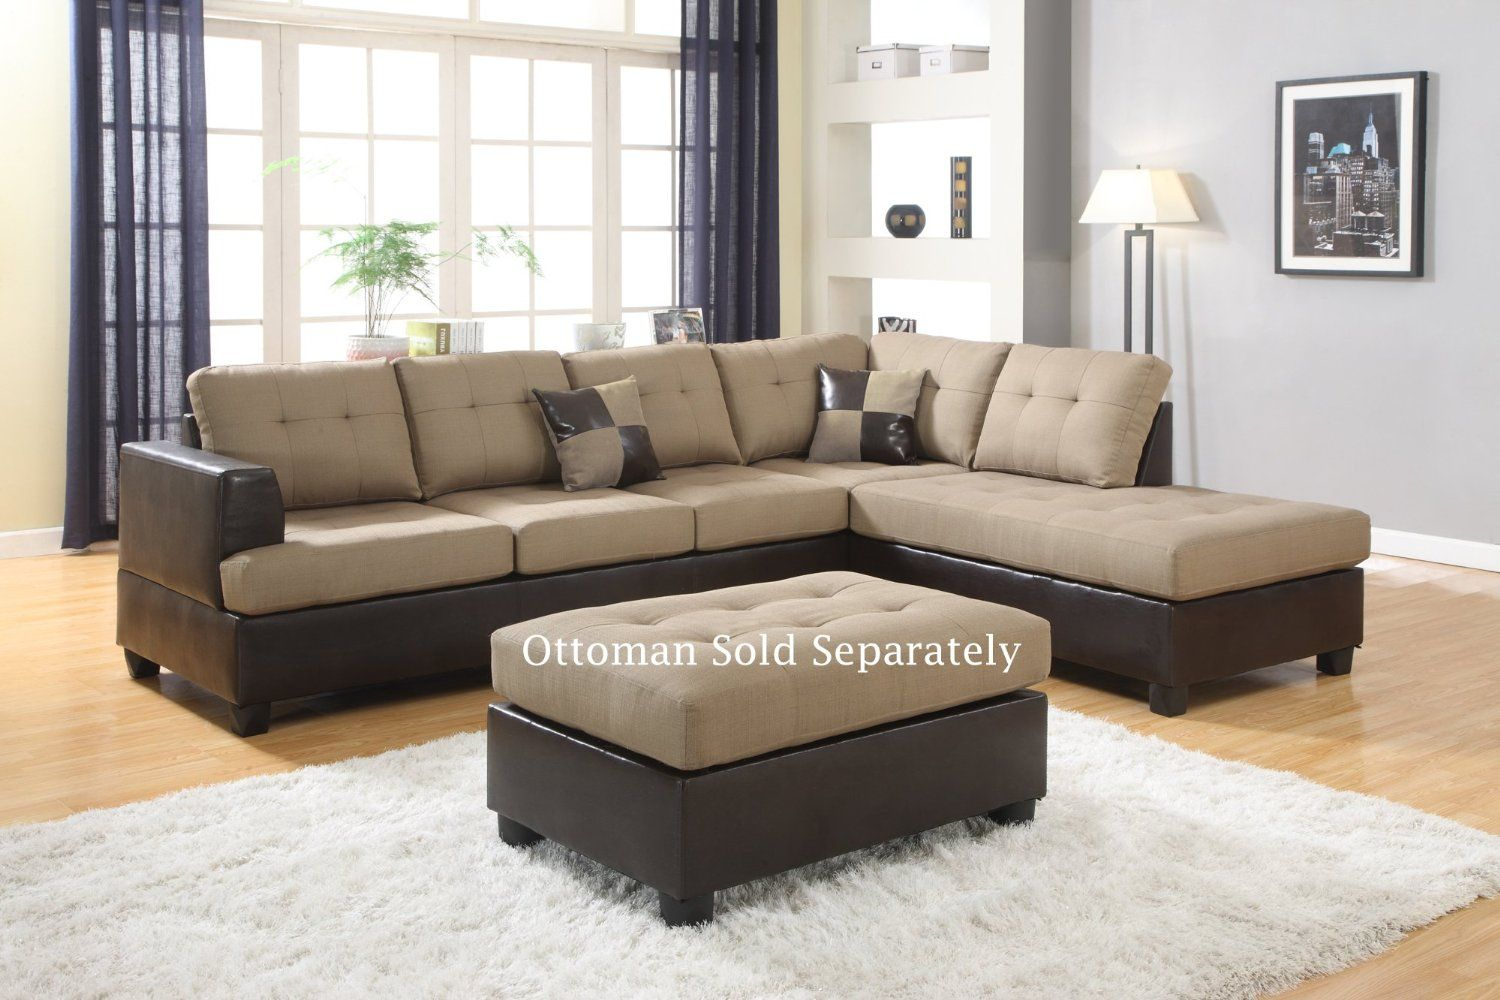 Amazon Com Ellus Beige Fabric And Faux Leather 2 Piece Reversible Sectional Sofa Kitchen Dining Sectional Sofa Sectional Sofa Couch Sectional Sofa Sale